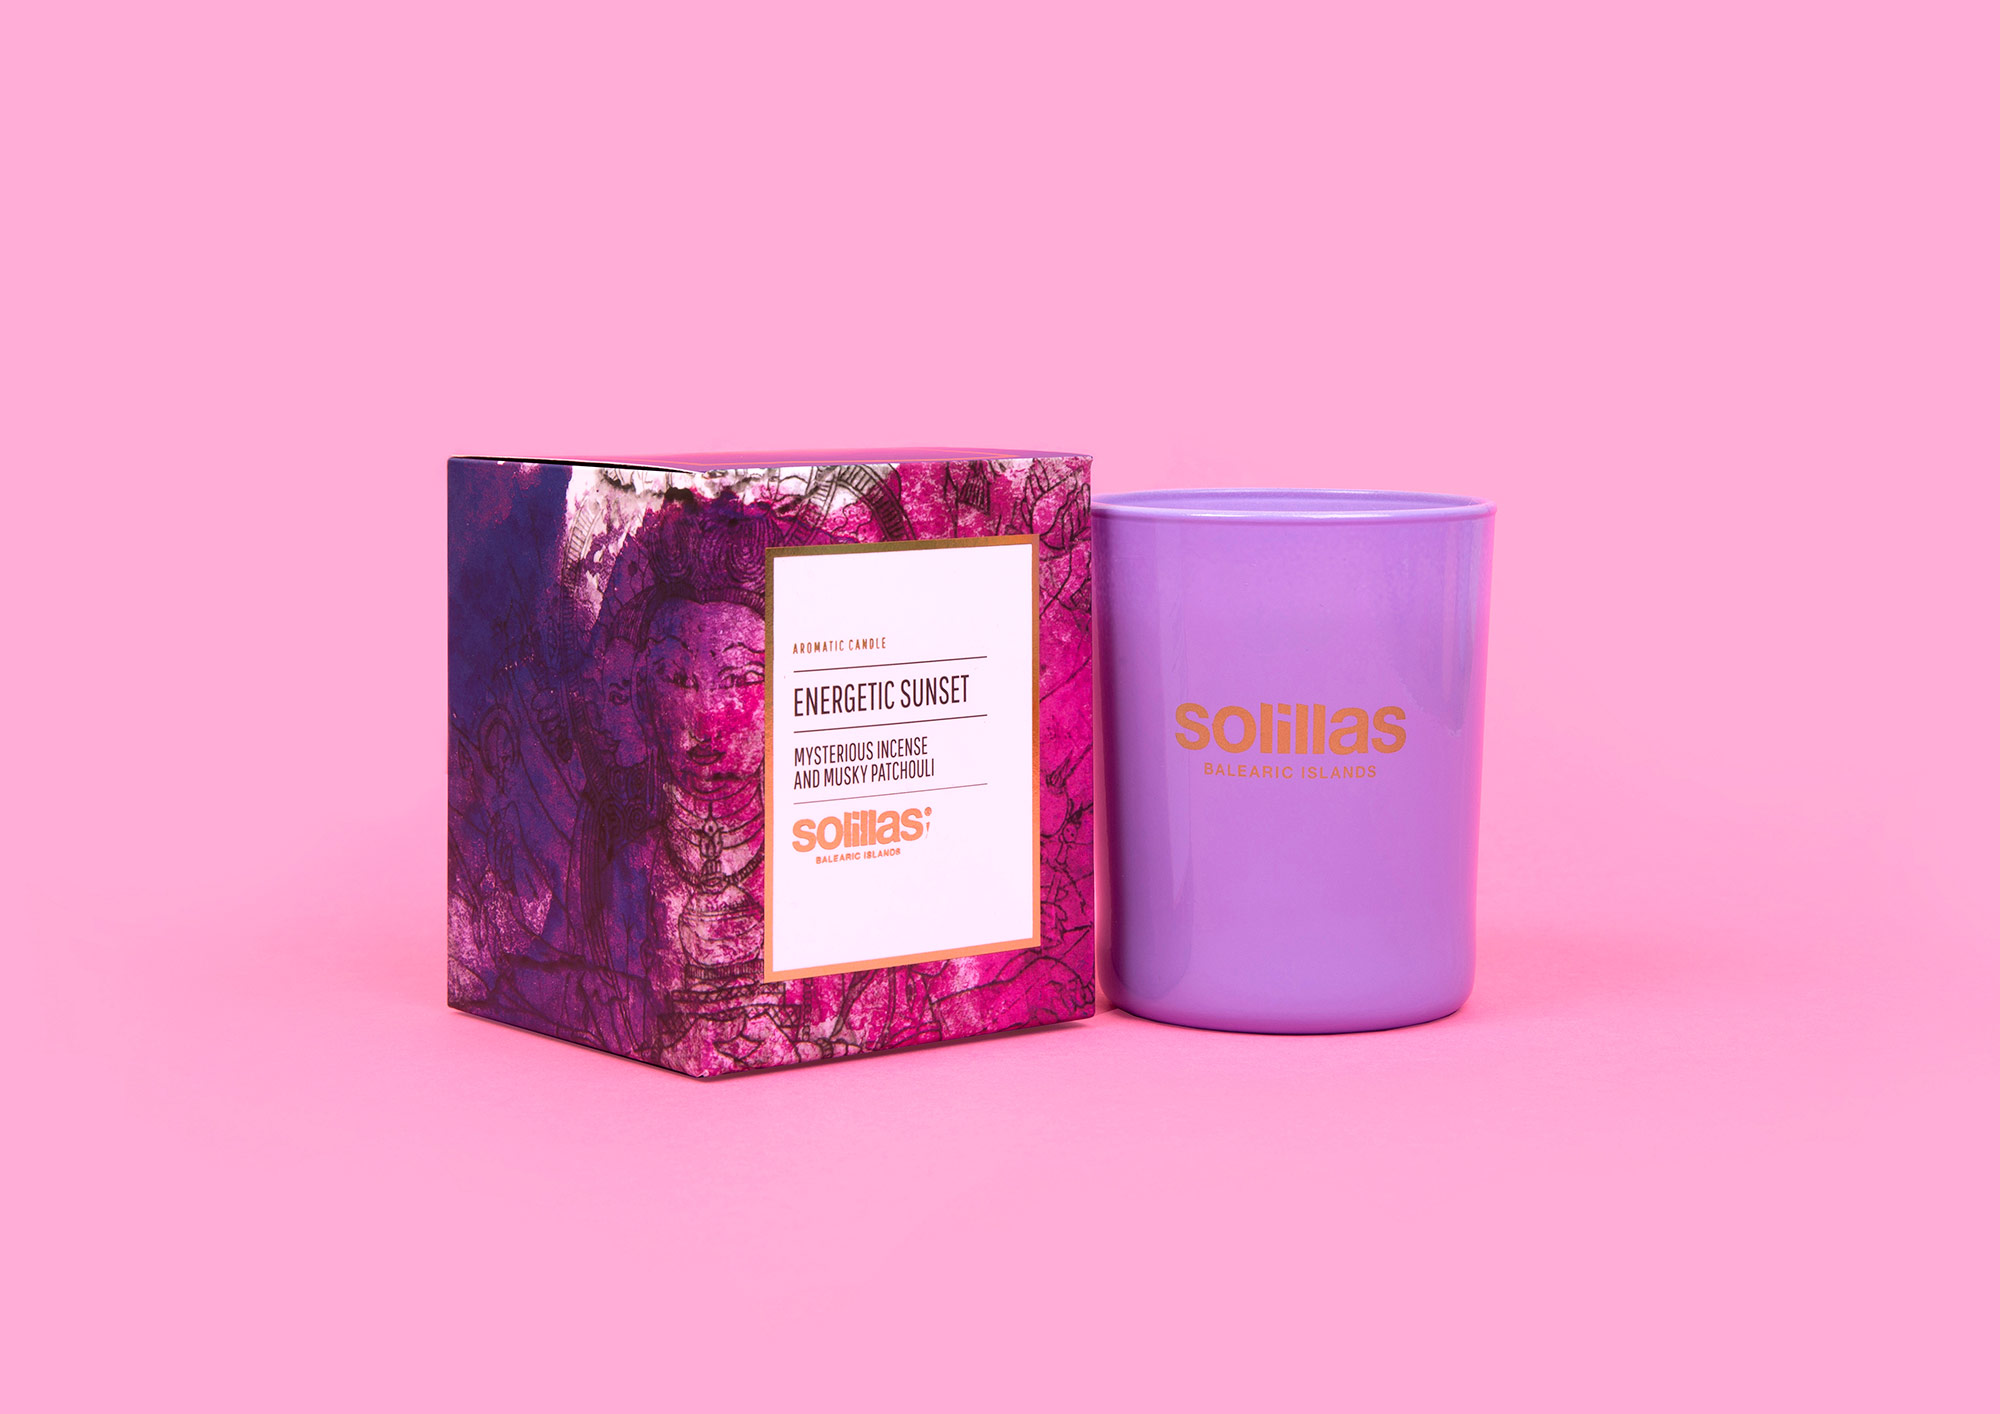 Solillas candle packaging